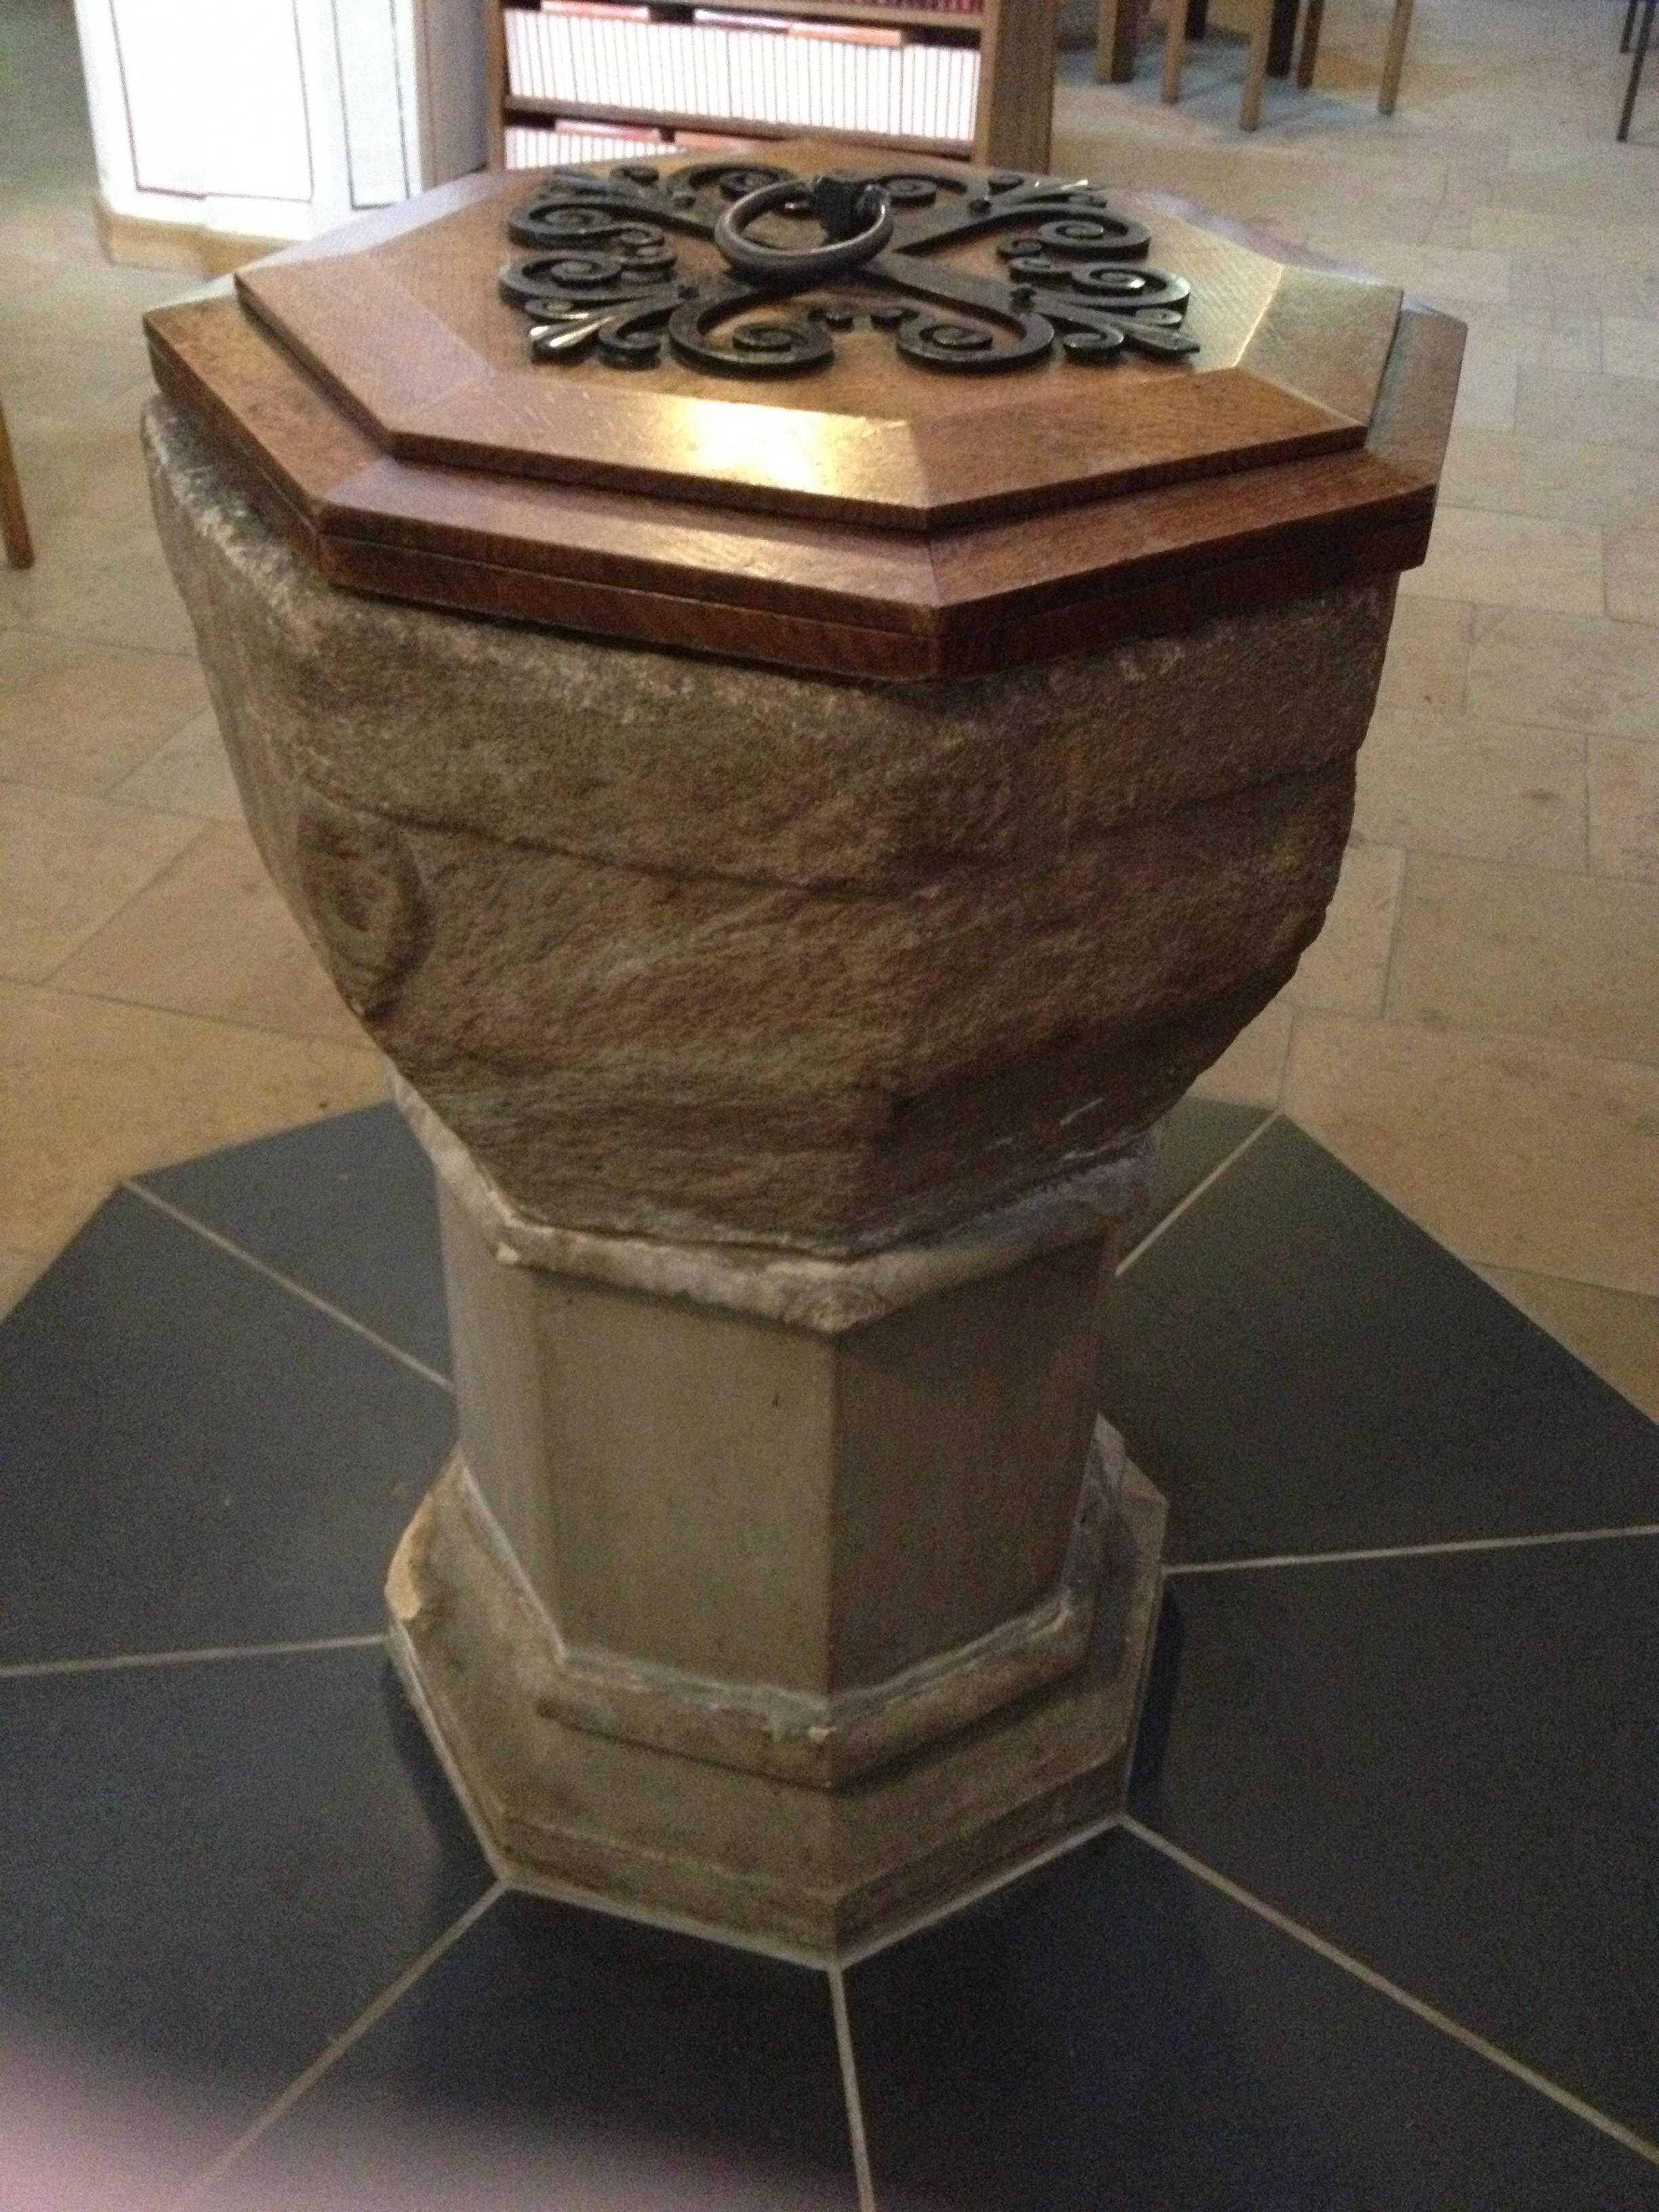 A twelfth century baptismal font from a church in the Peak District. Photo by David Russell Mosley